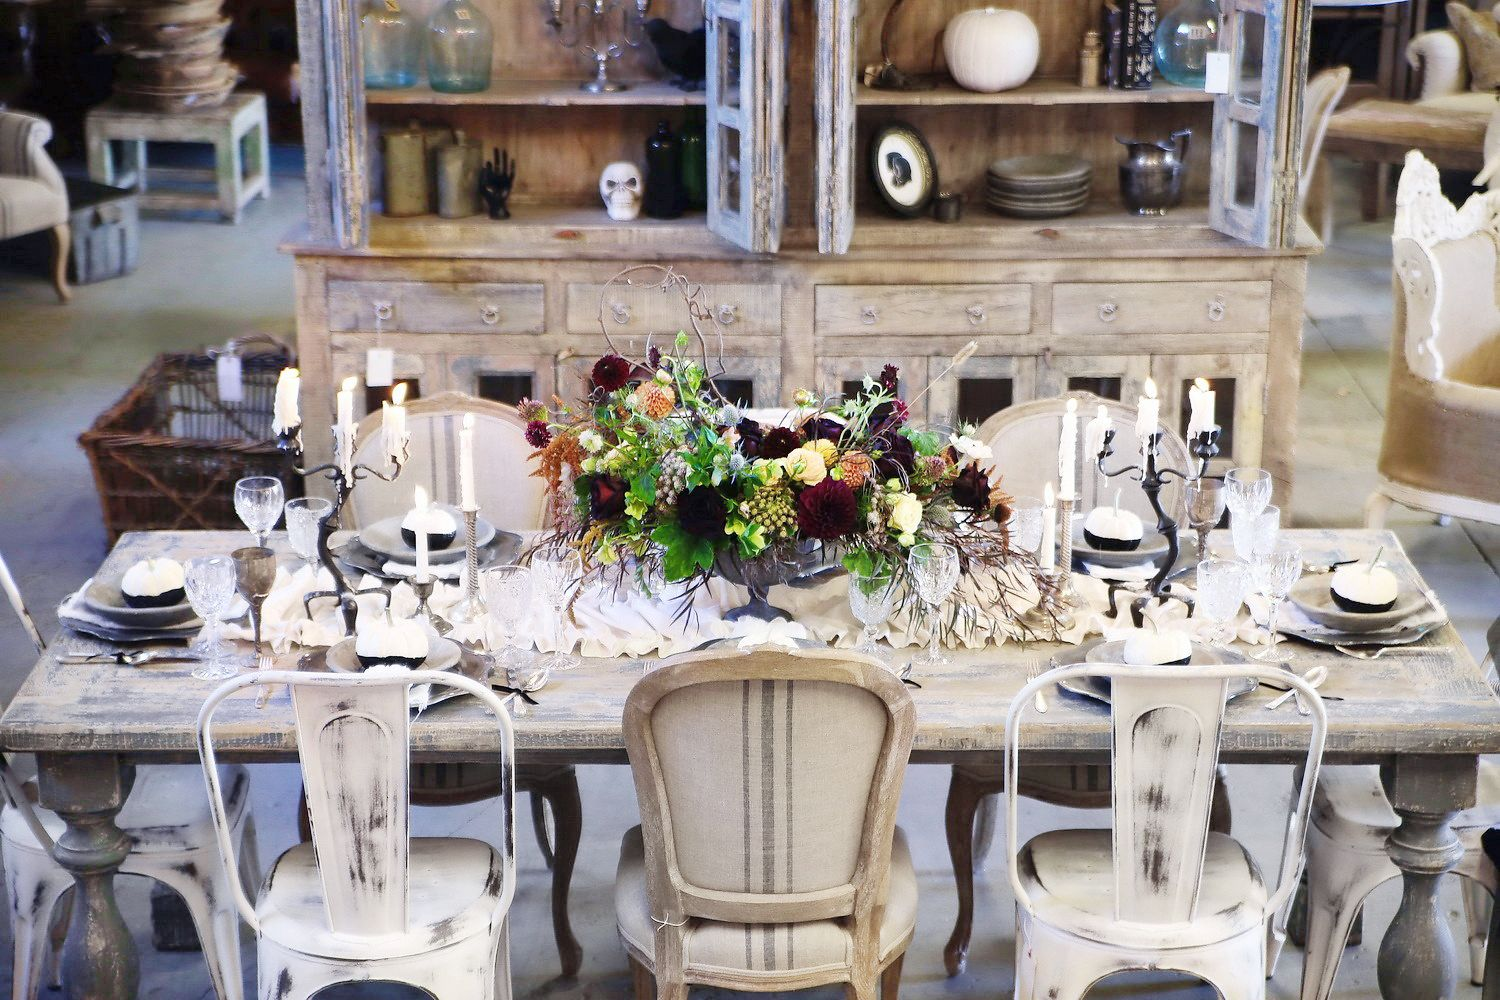 Best Halloween Table Decorations And Centerpiece Ideas  Chic Halloween  Tablescapes